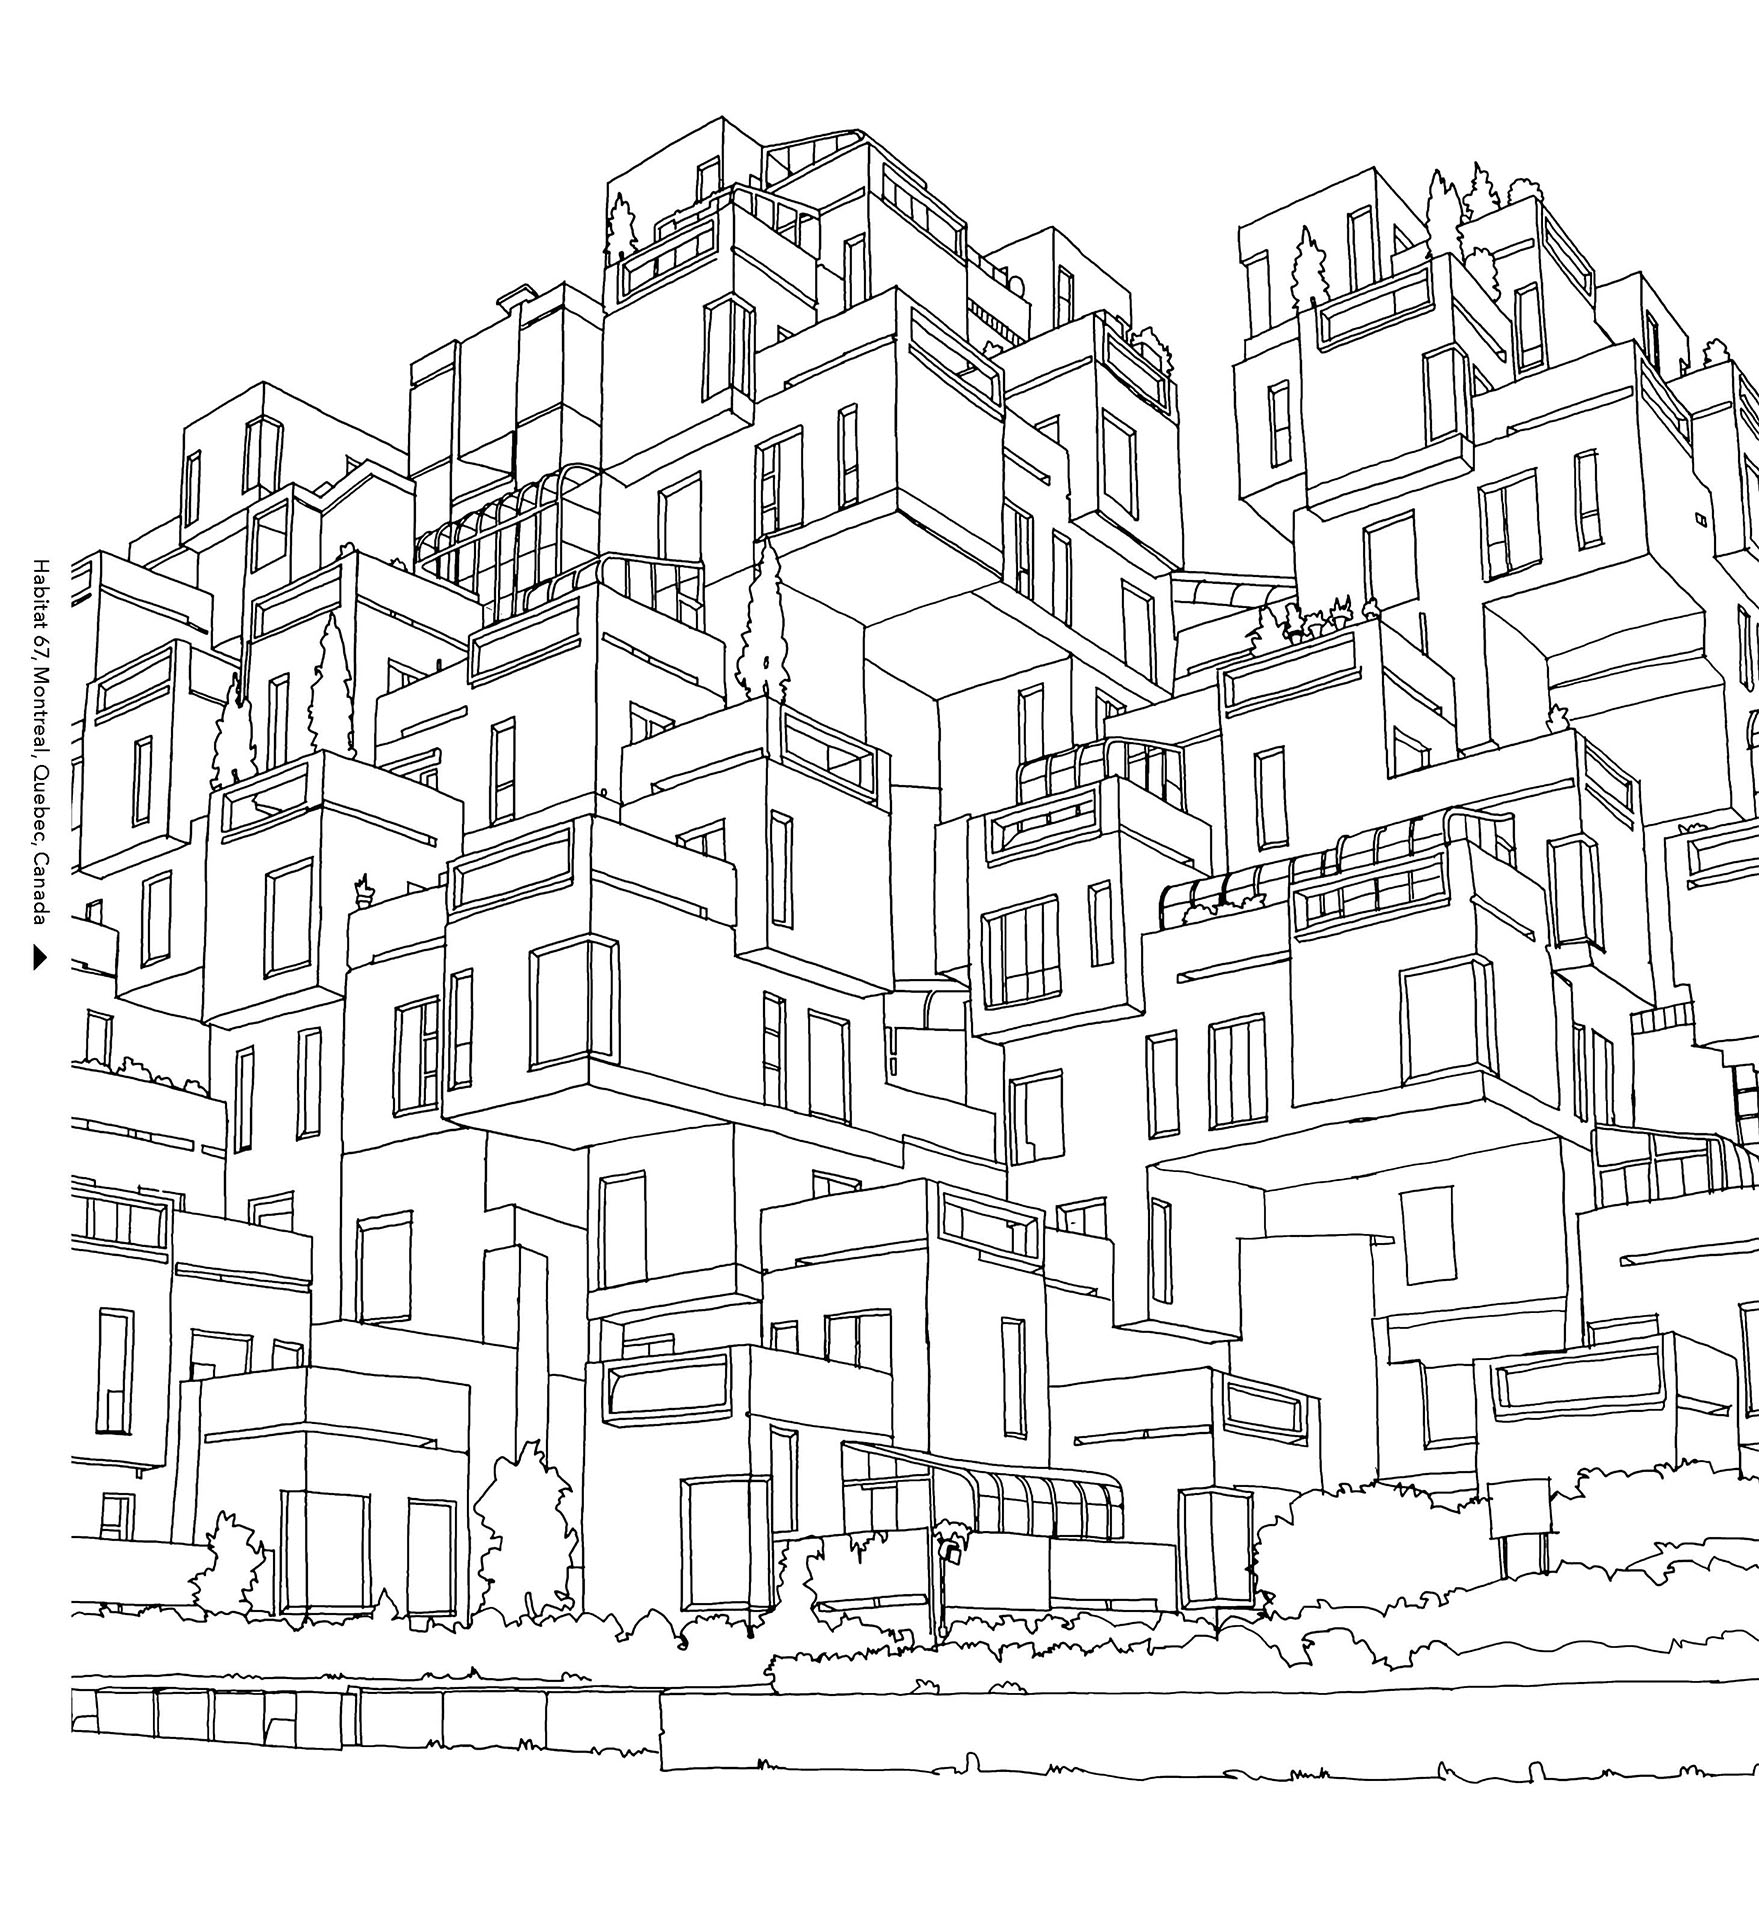 Coloring pages quebec - A Geometrical City To Color From The Gallery Architecture Living